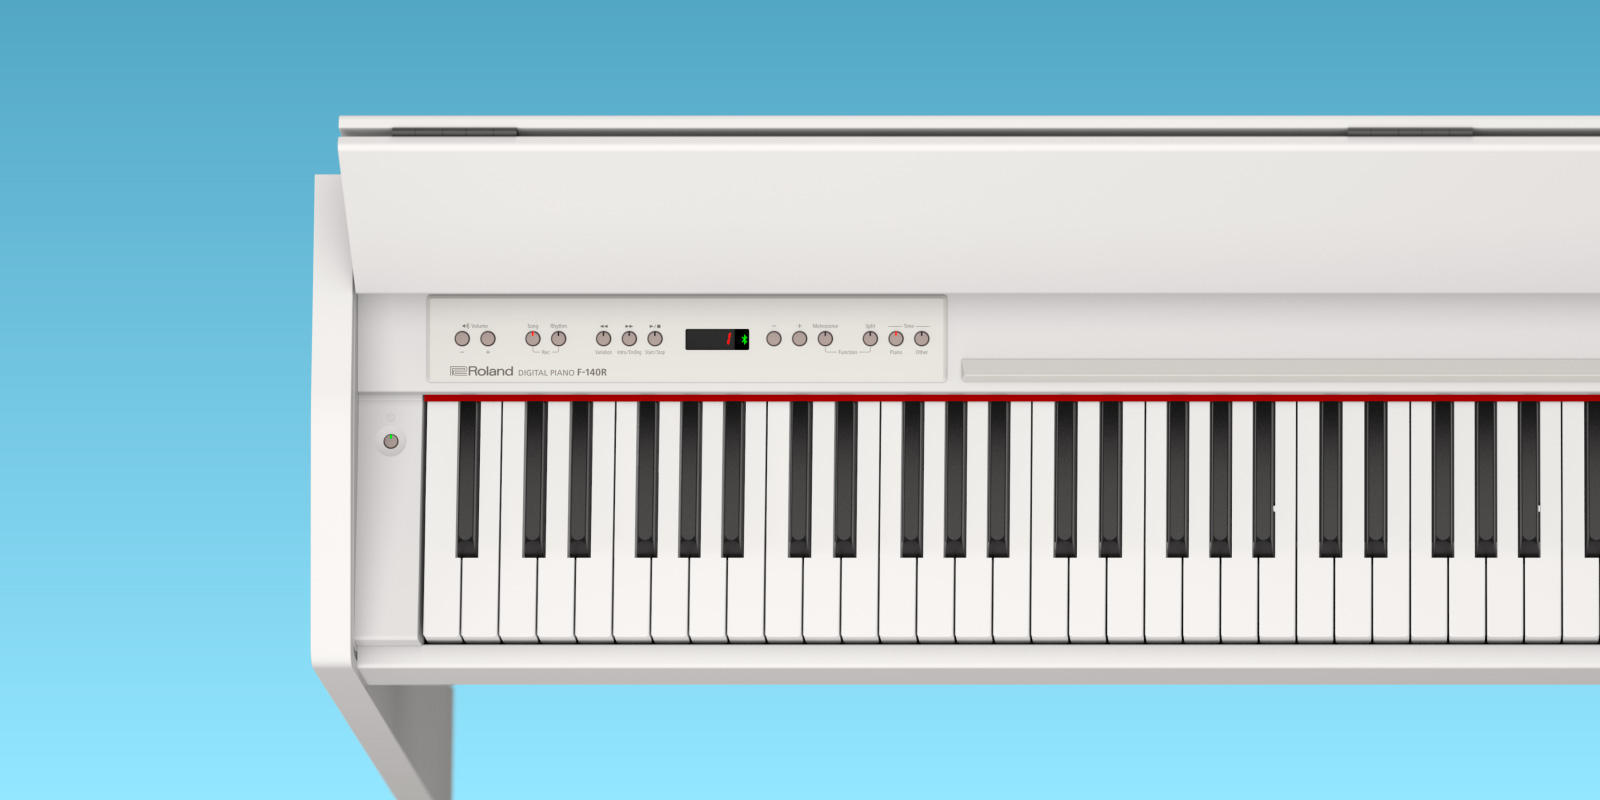 how to turn the metronome off in krome keyboard